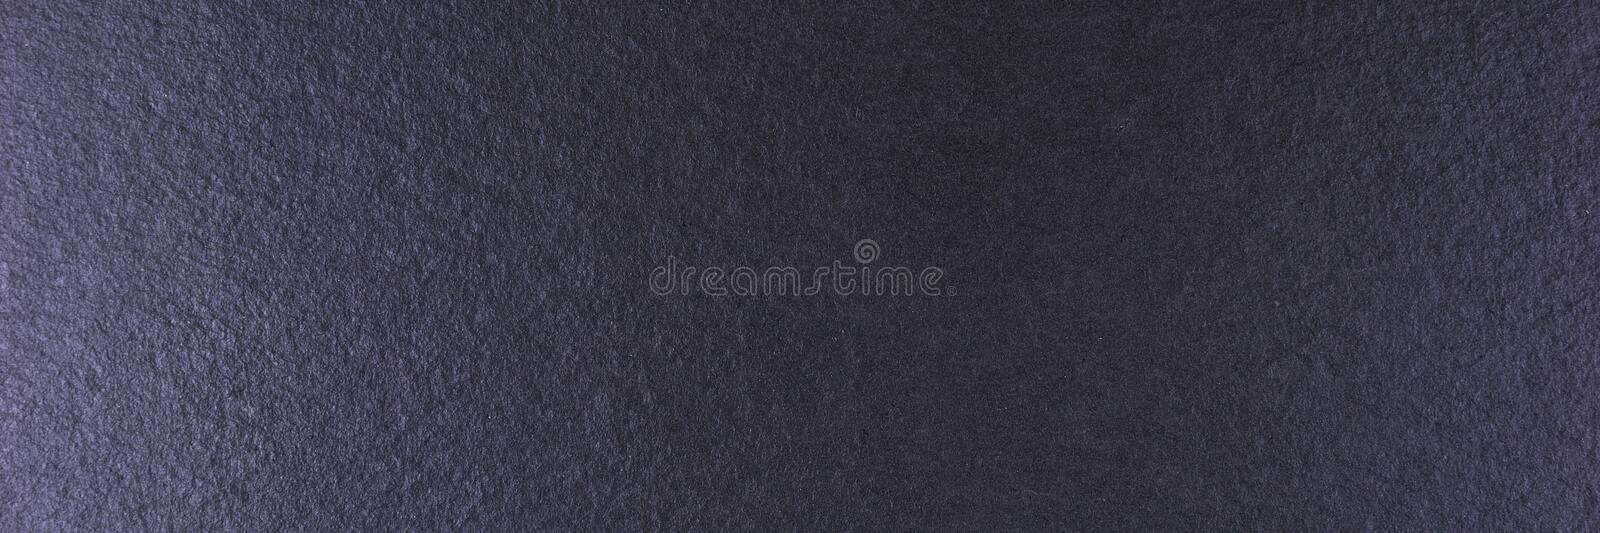 Black stone or slate background, black texture royalty free stock photo